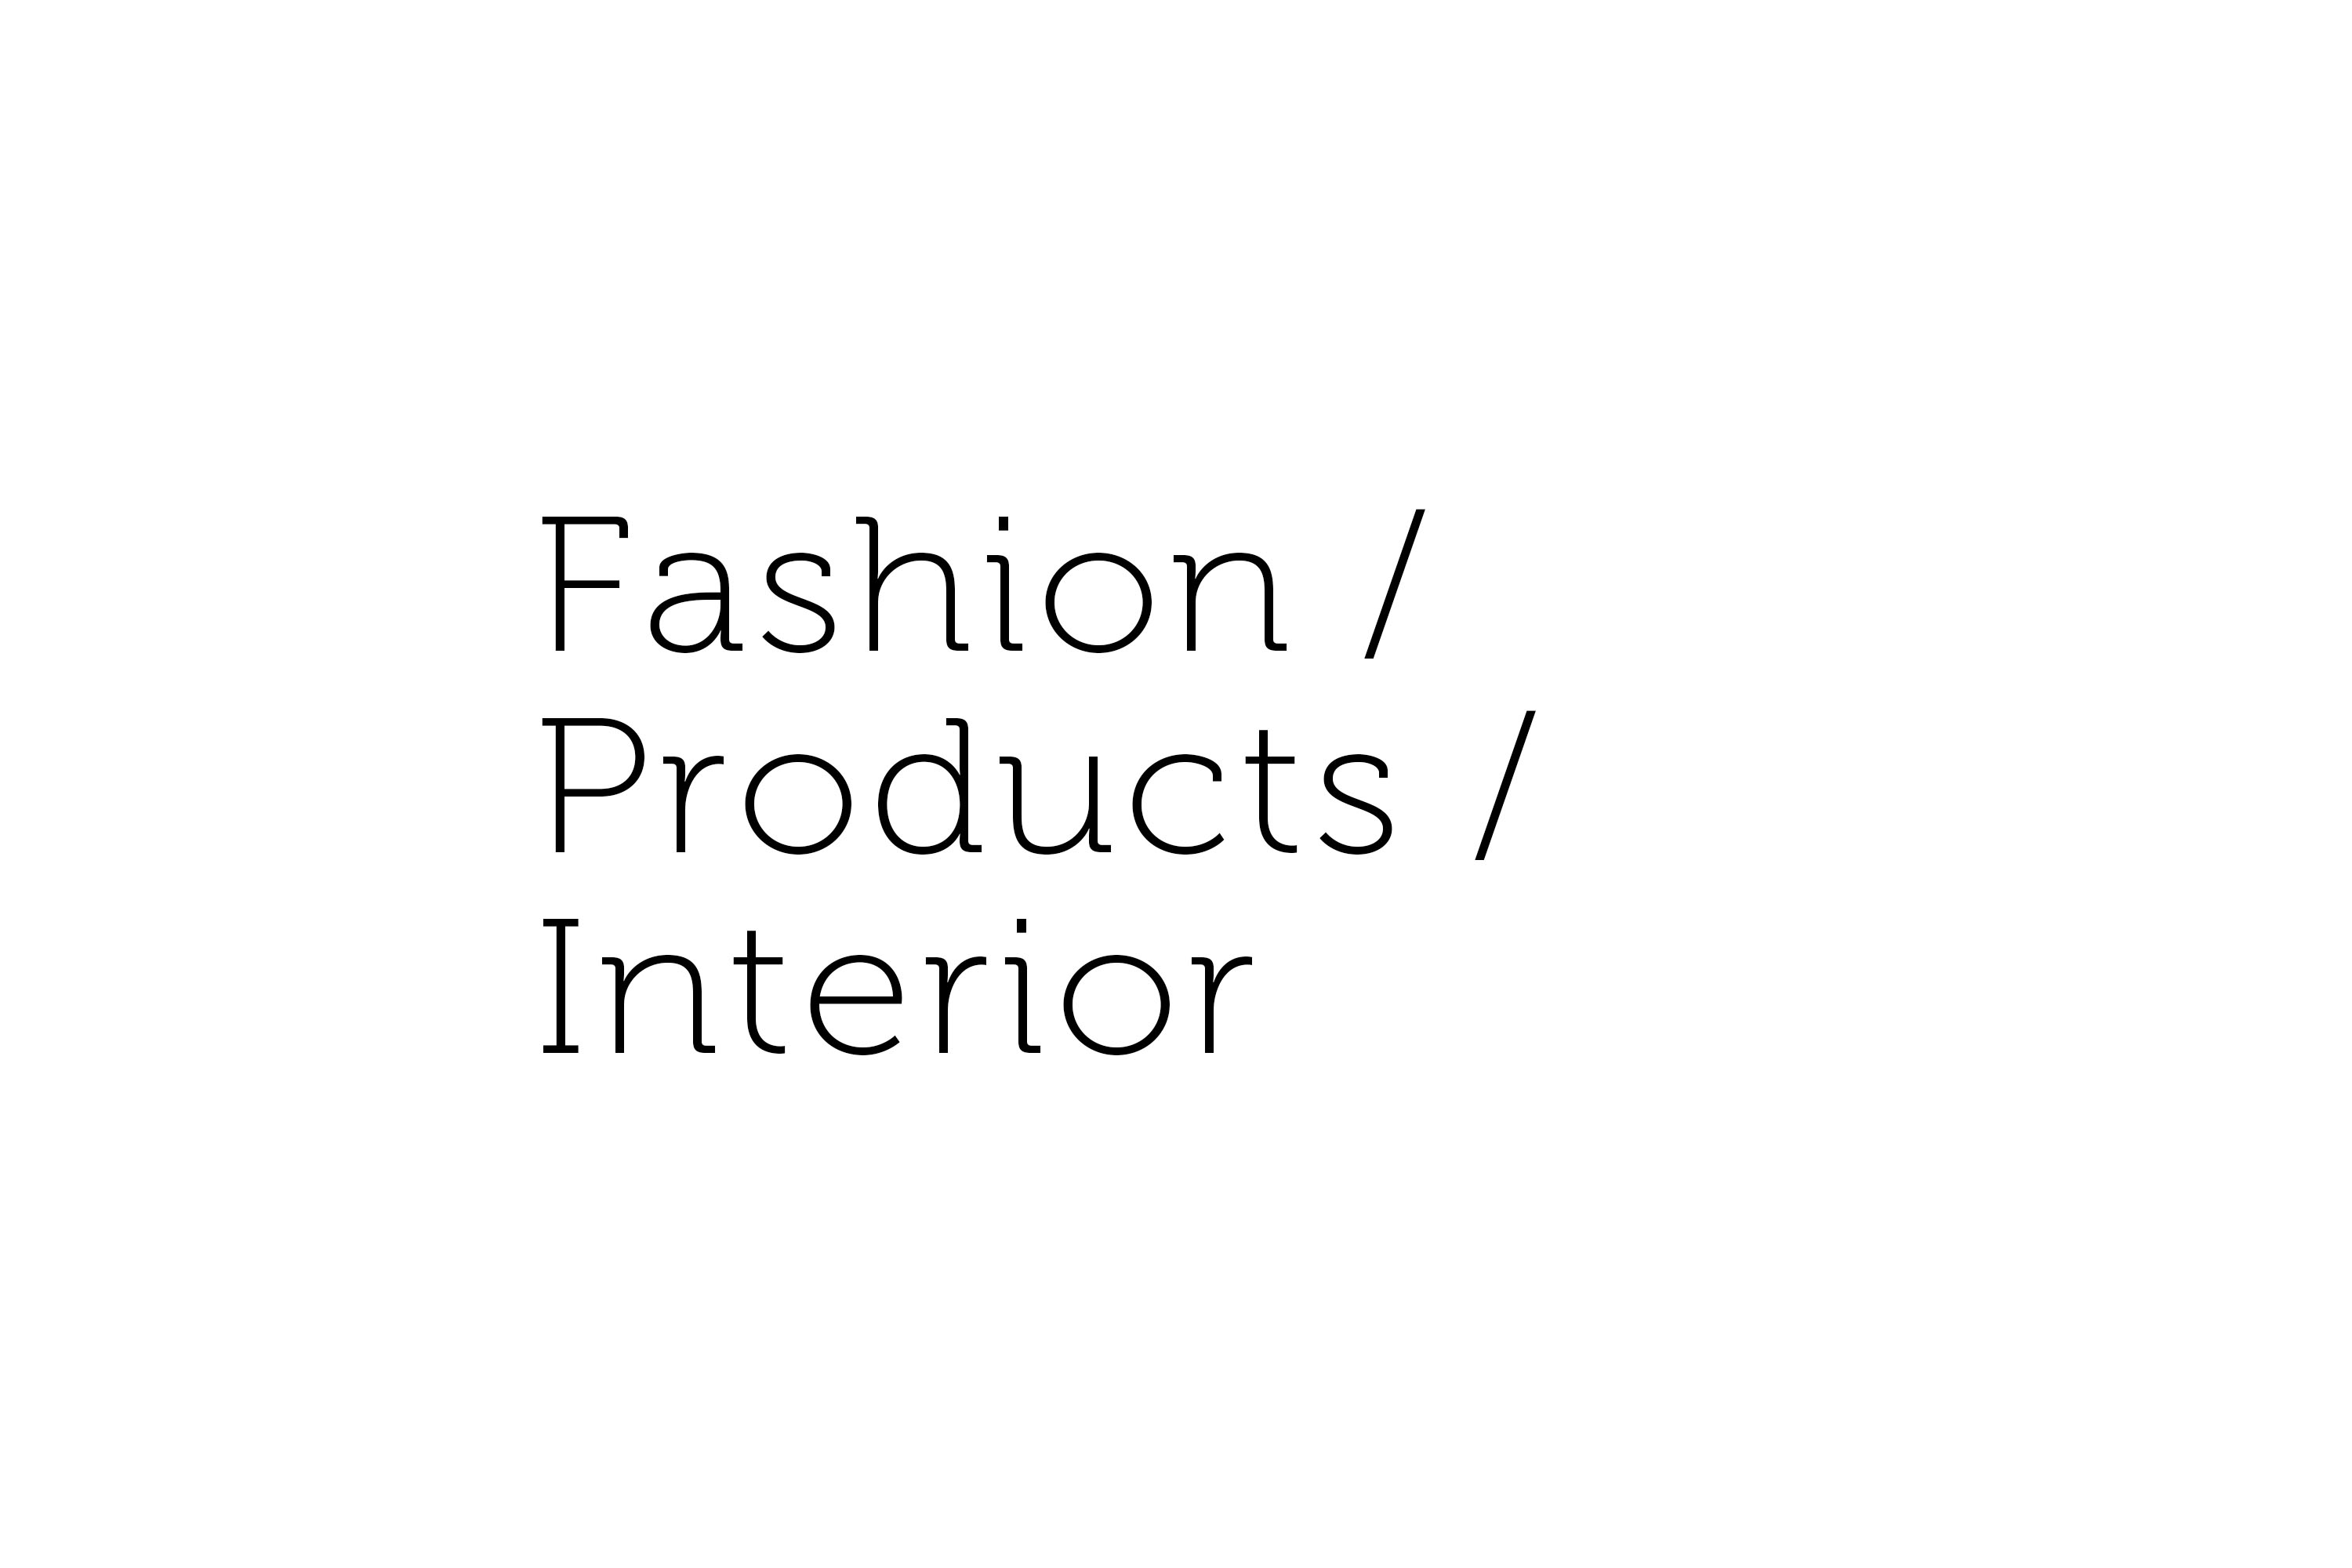 Fashion / Products / Interior